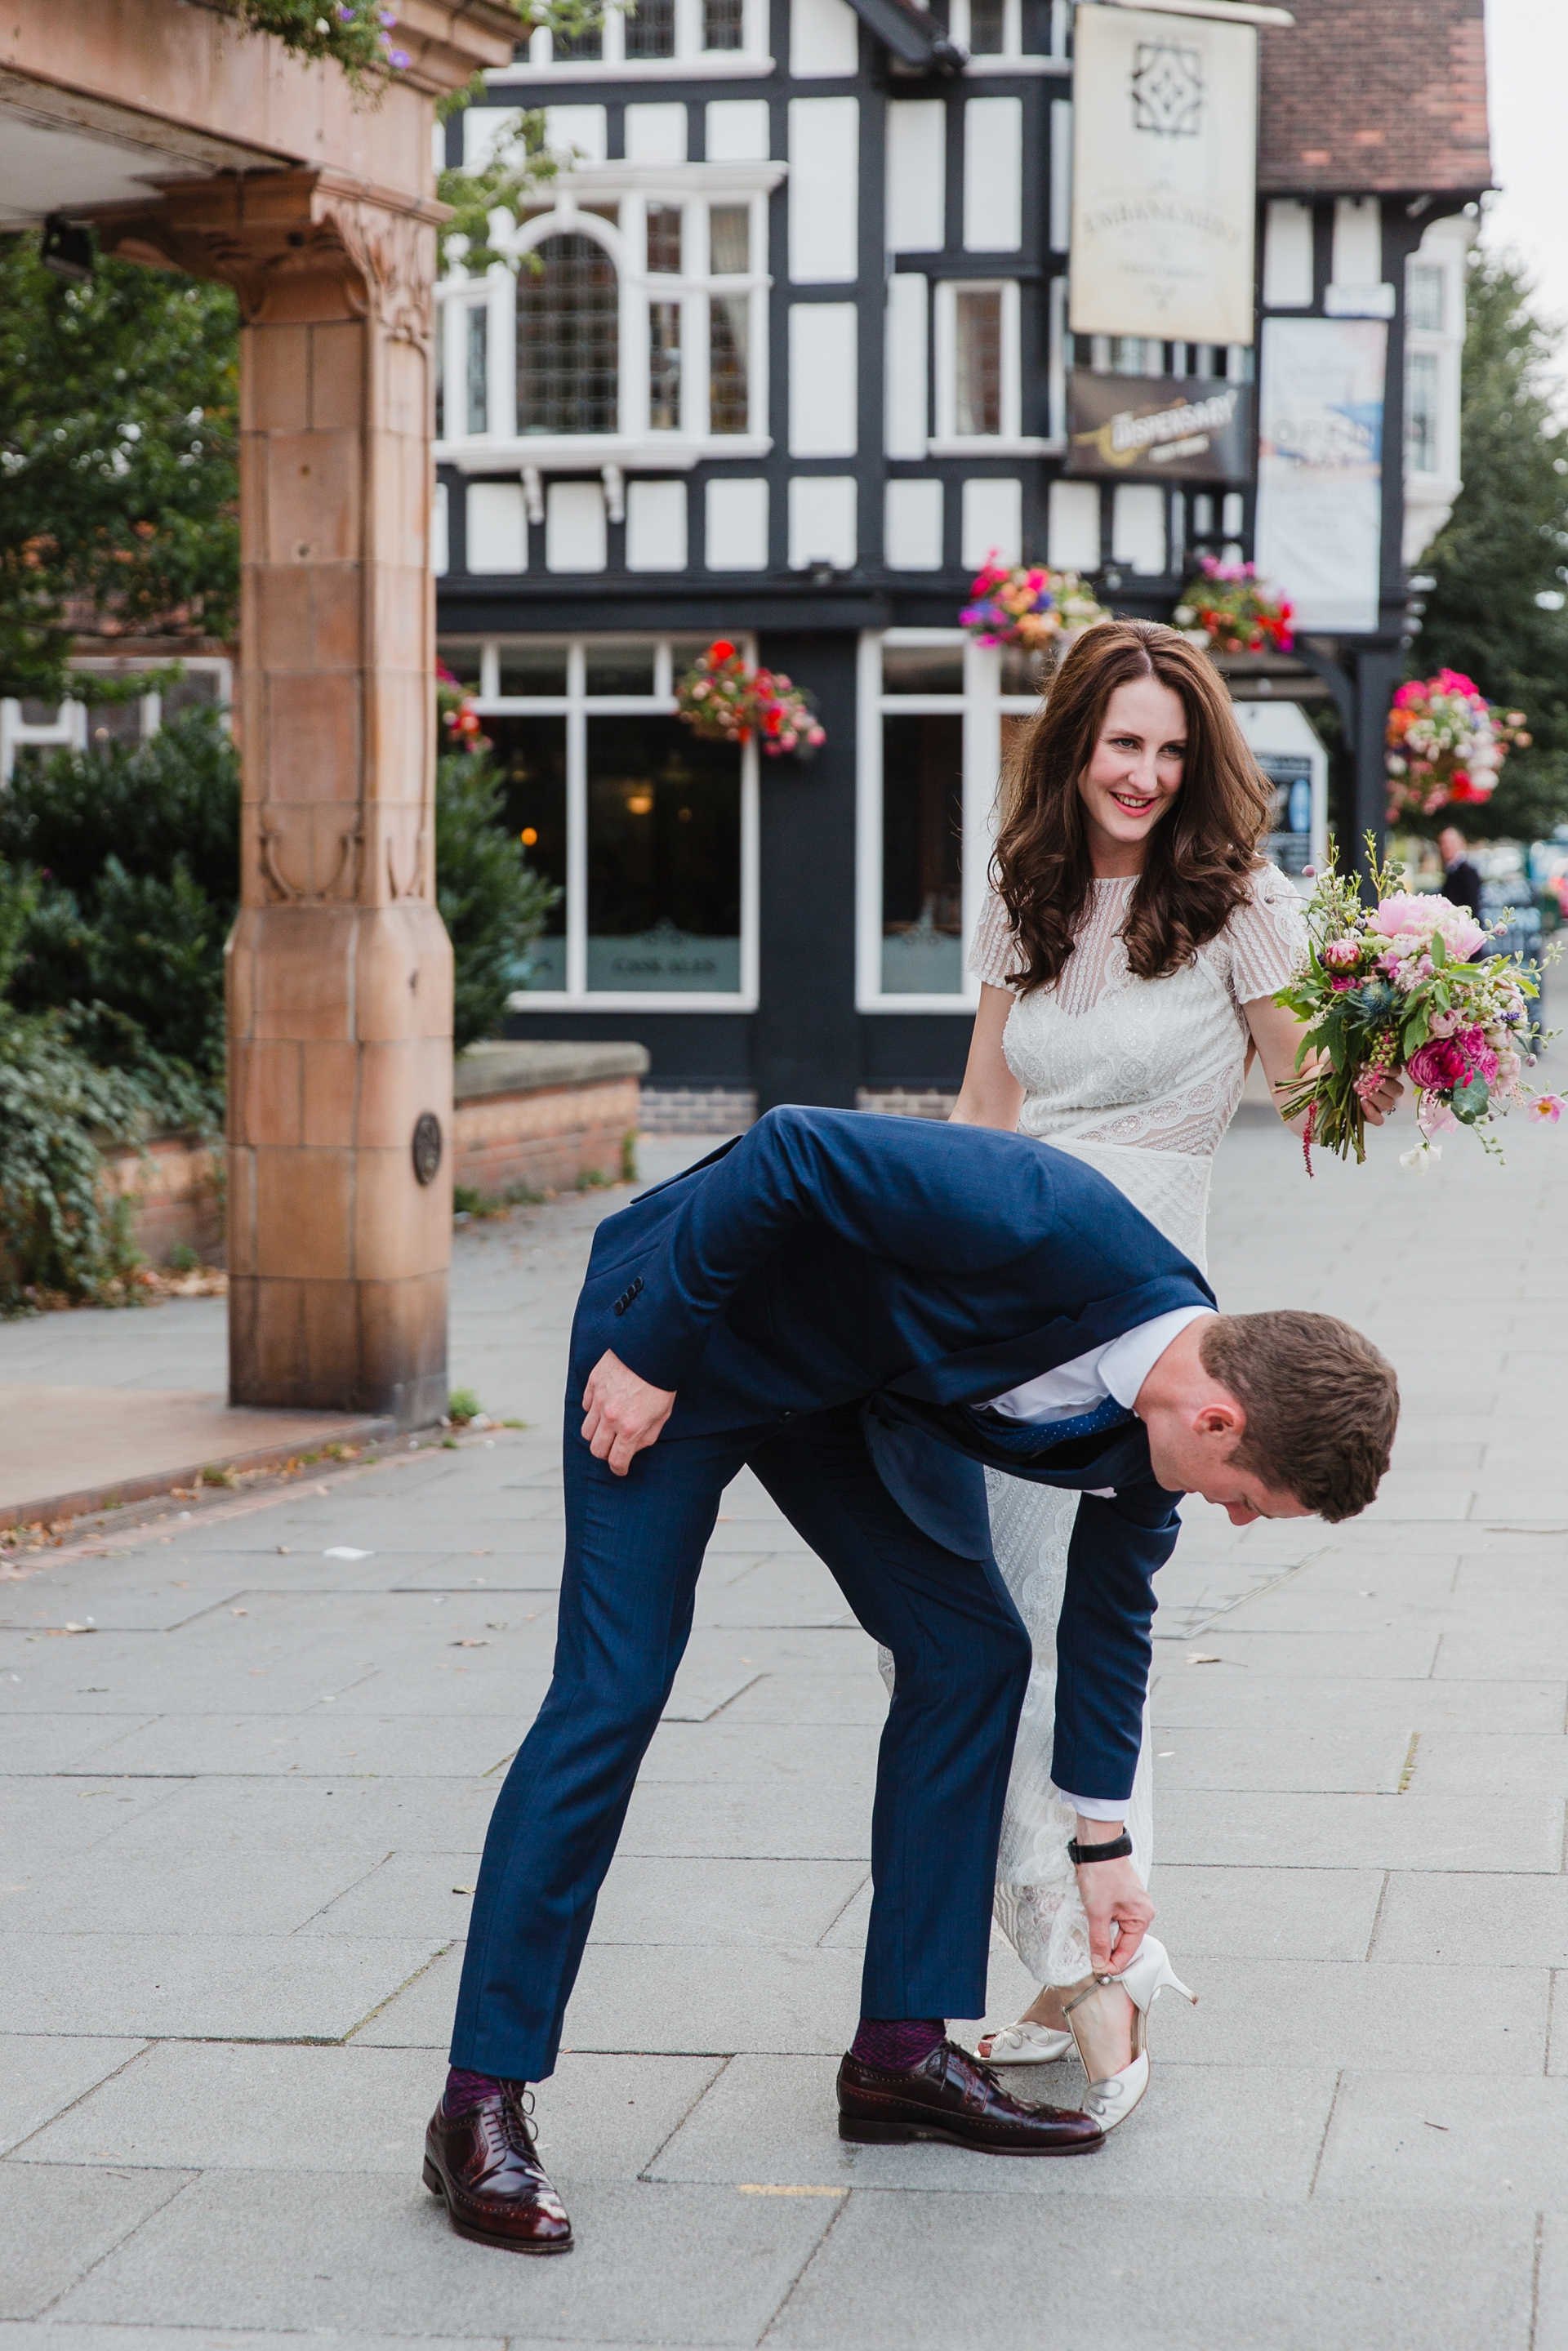 Nottingham Embankment Wedding